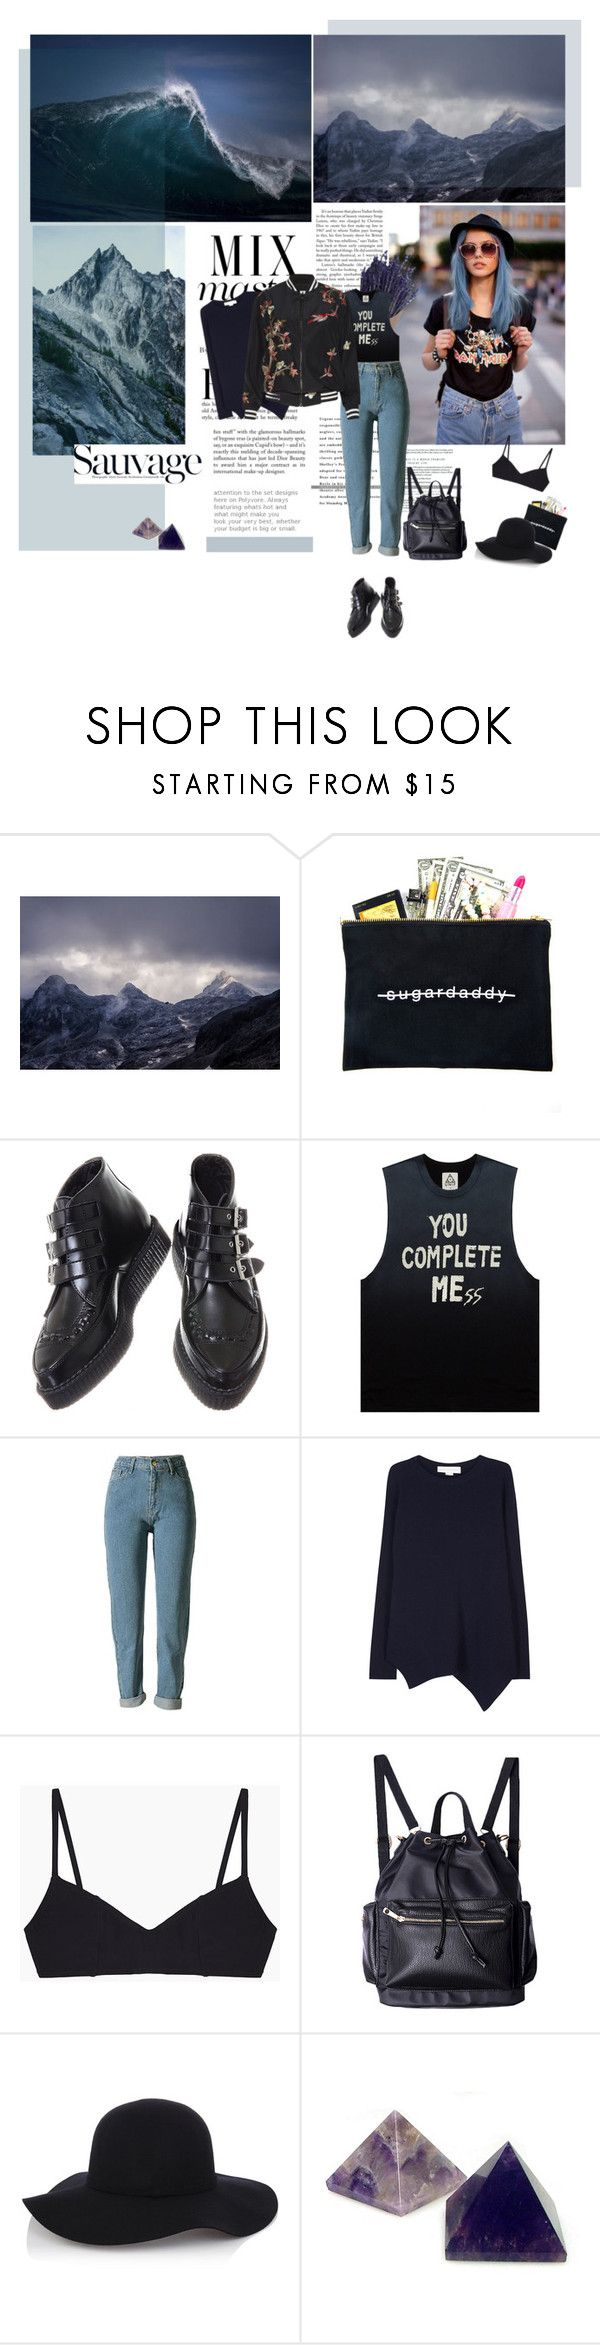 """Landscapes"" by solespejismo on Polyvore featuring Libertine, Dimepiece, STELLA McCARTNEY, Araks, Warehouse, Anja and Alice + Olivia"